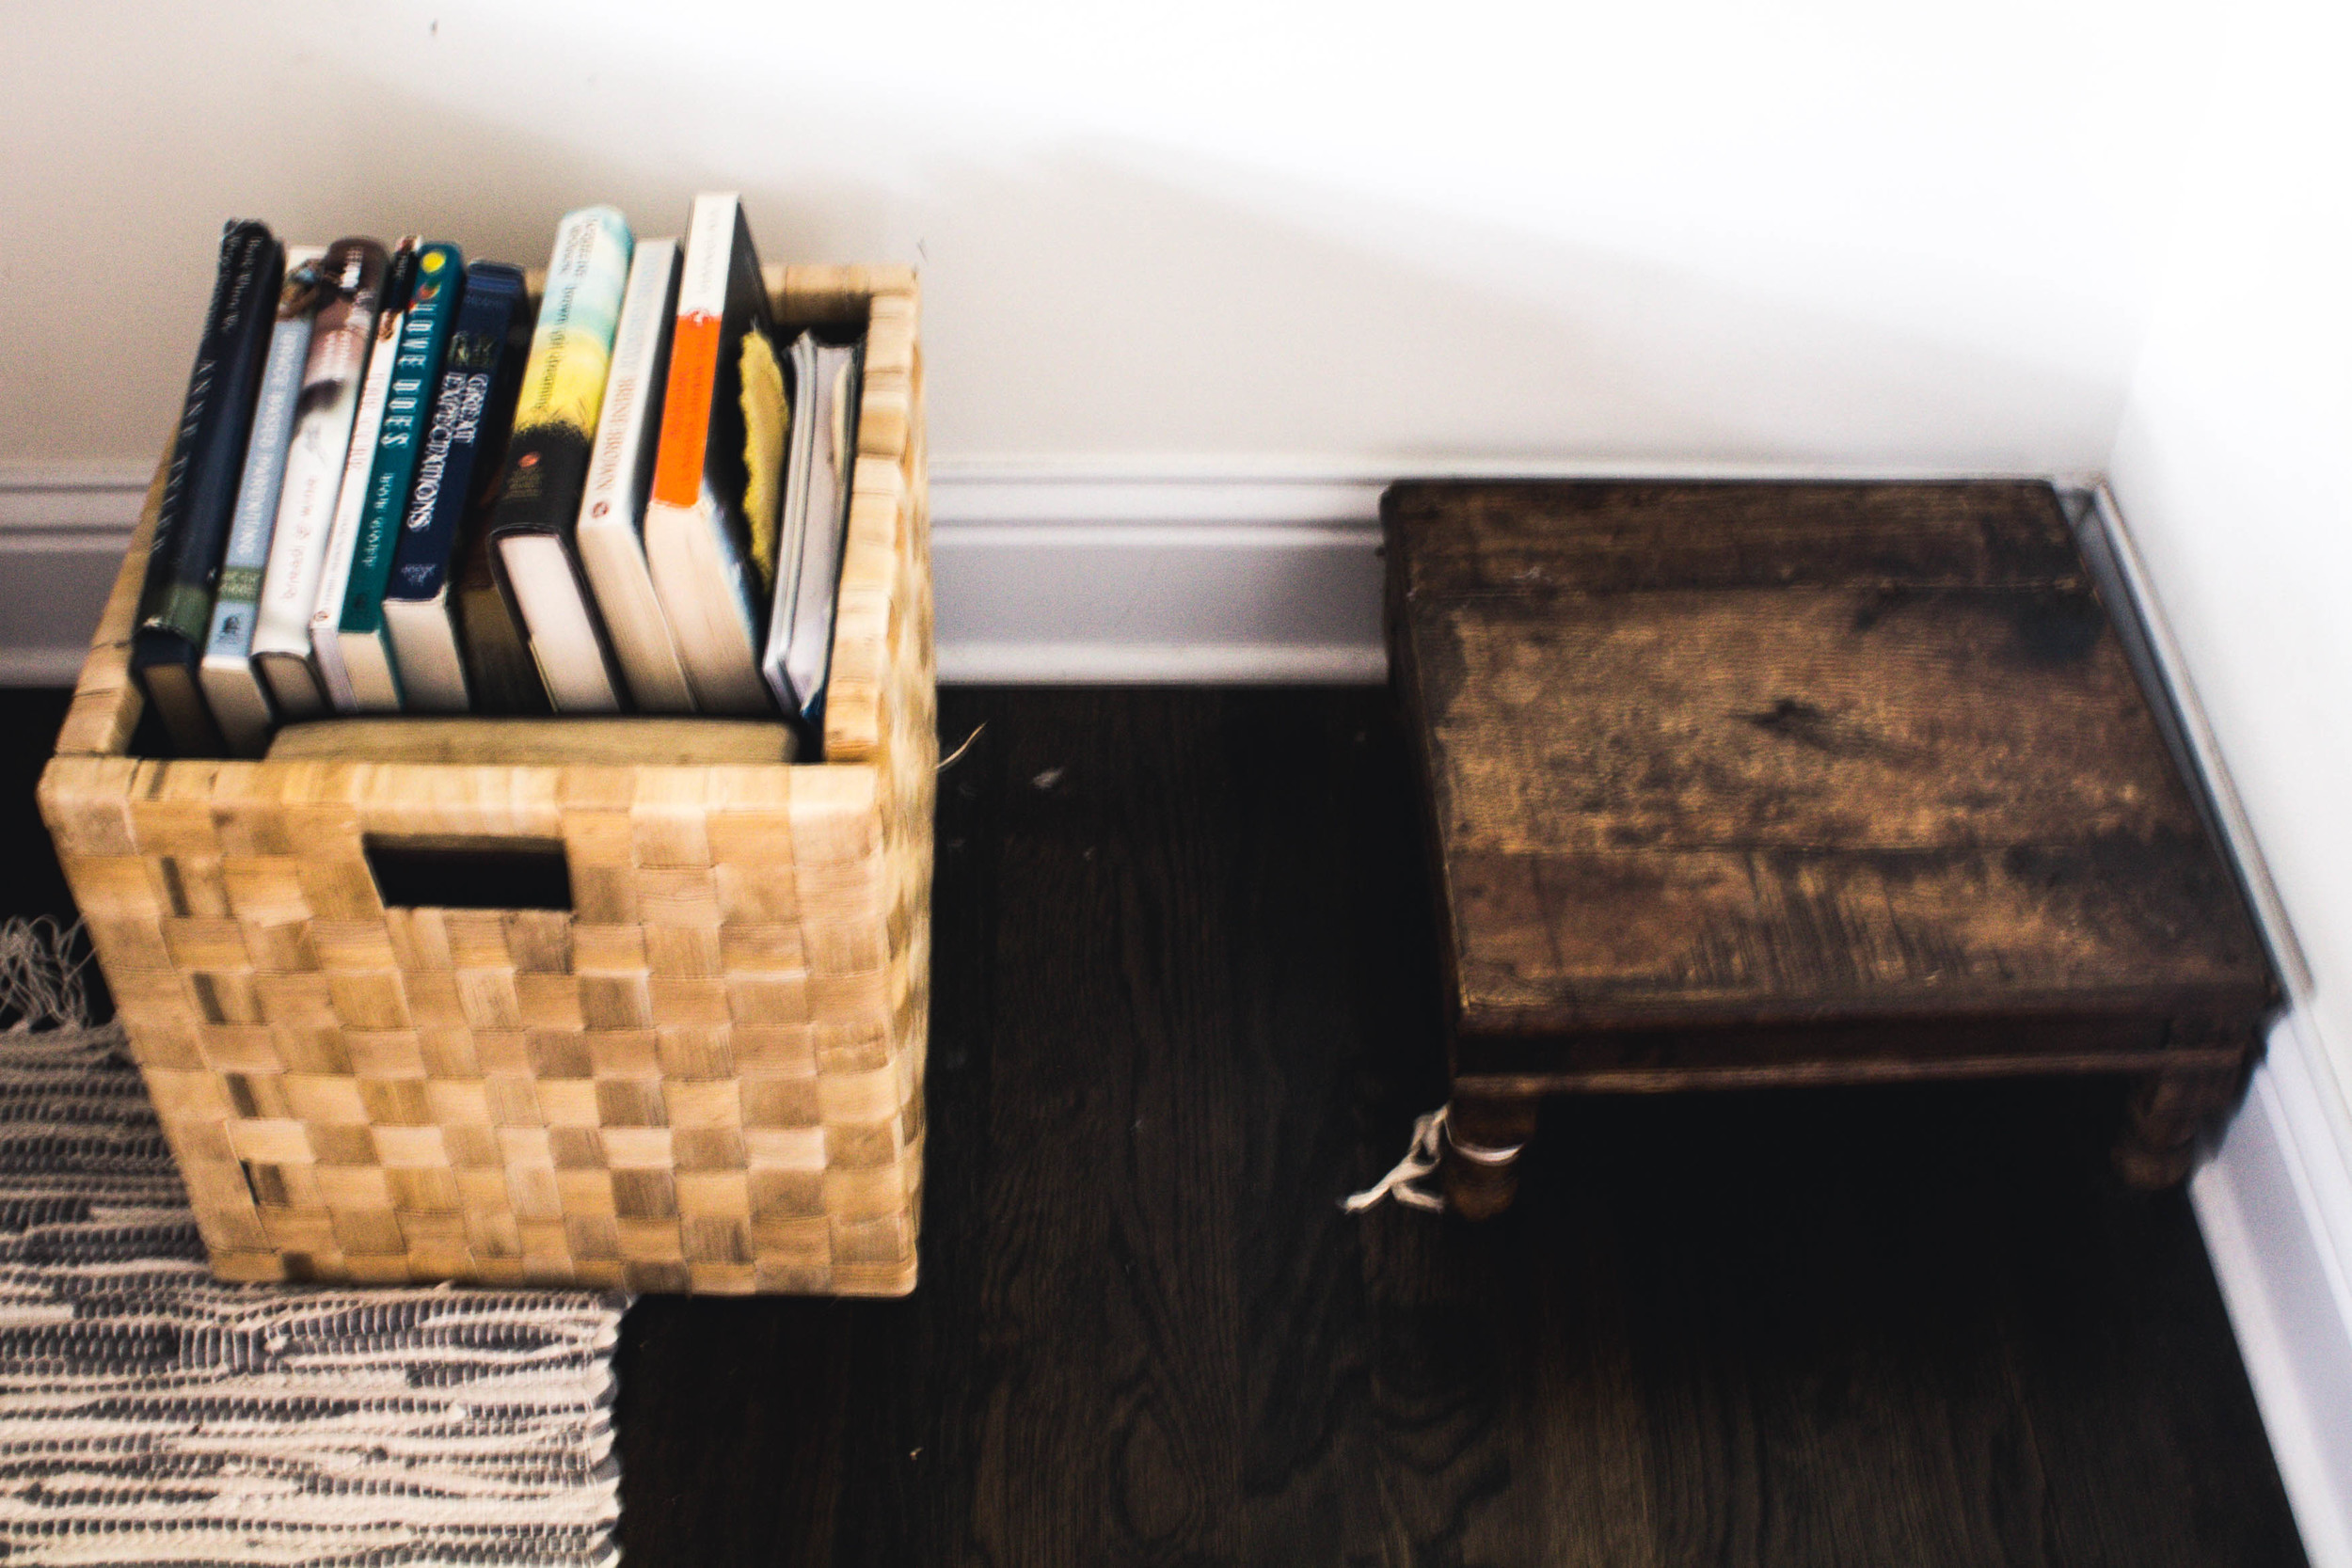 A simple basket holds just a fraction of all the books to be found throughout the house, partnered with a low wooden pedestal that compliments the hardwood flooring.